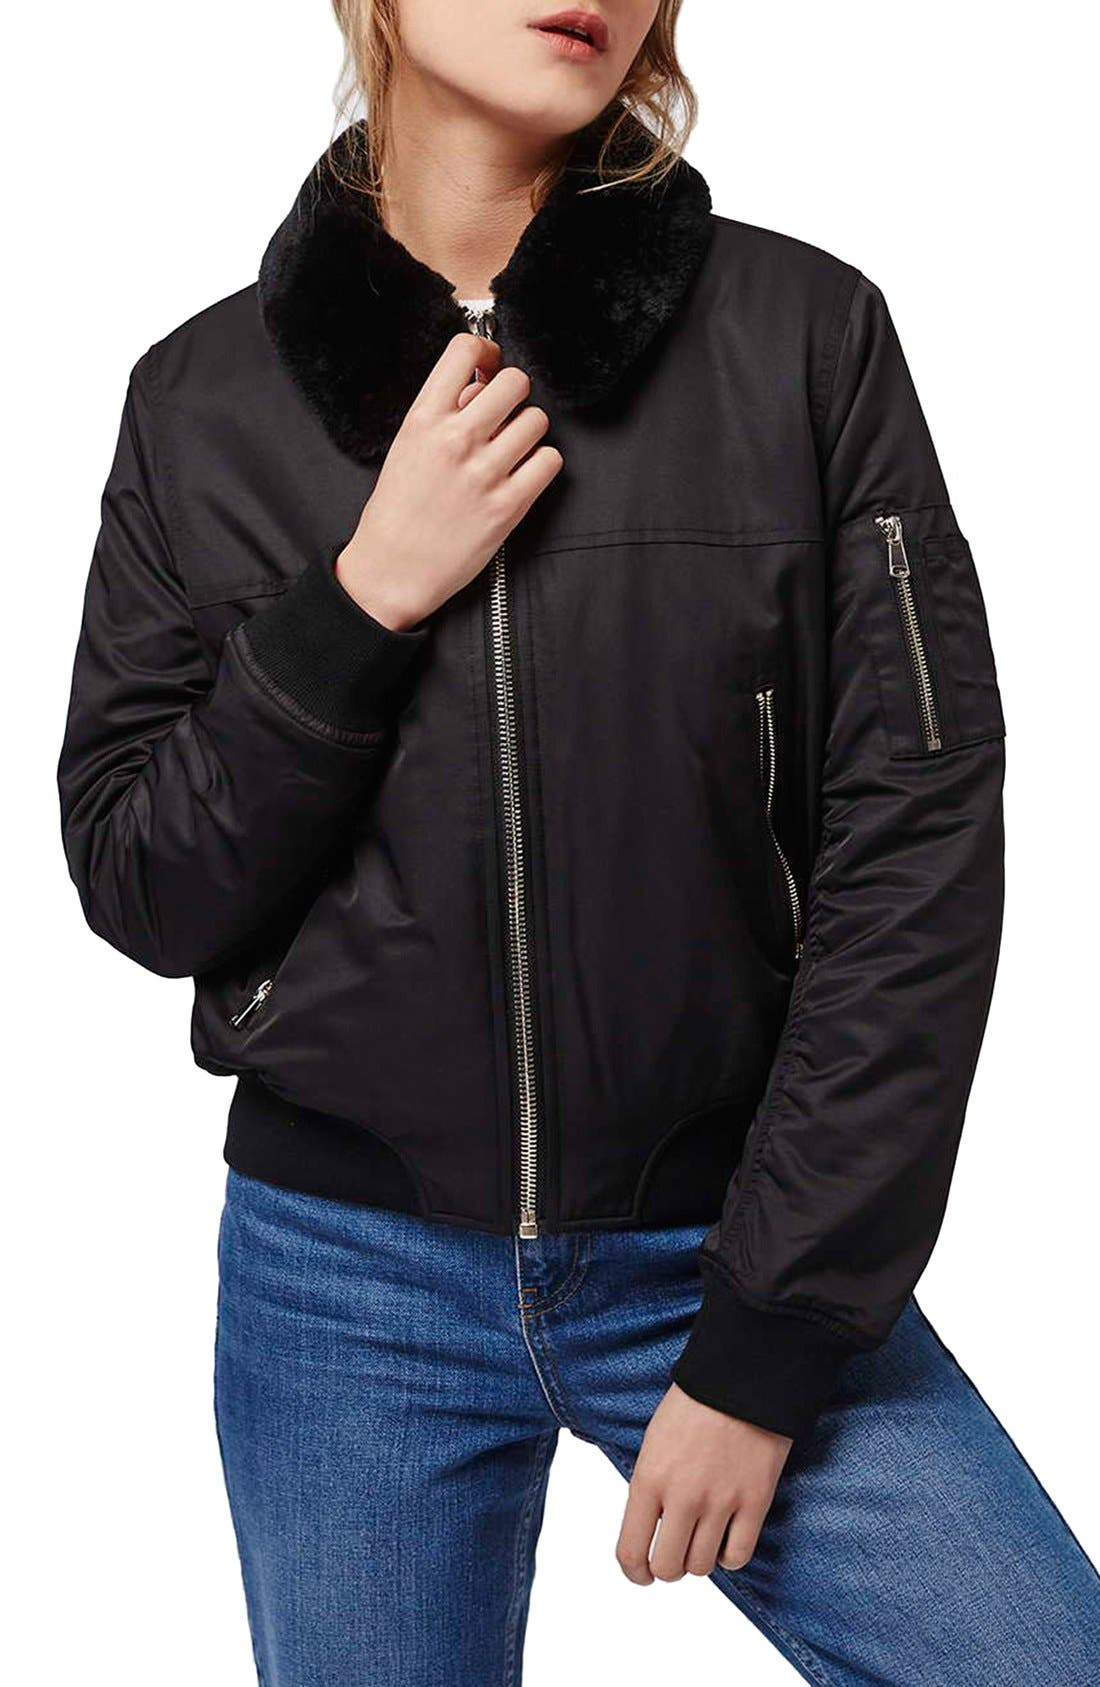 Alternate Image 1 Selected - Topshop 'MA1' Bomber Jacket with Faux Fur Collar (Petite)